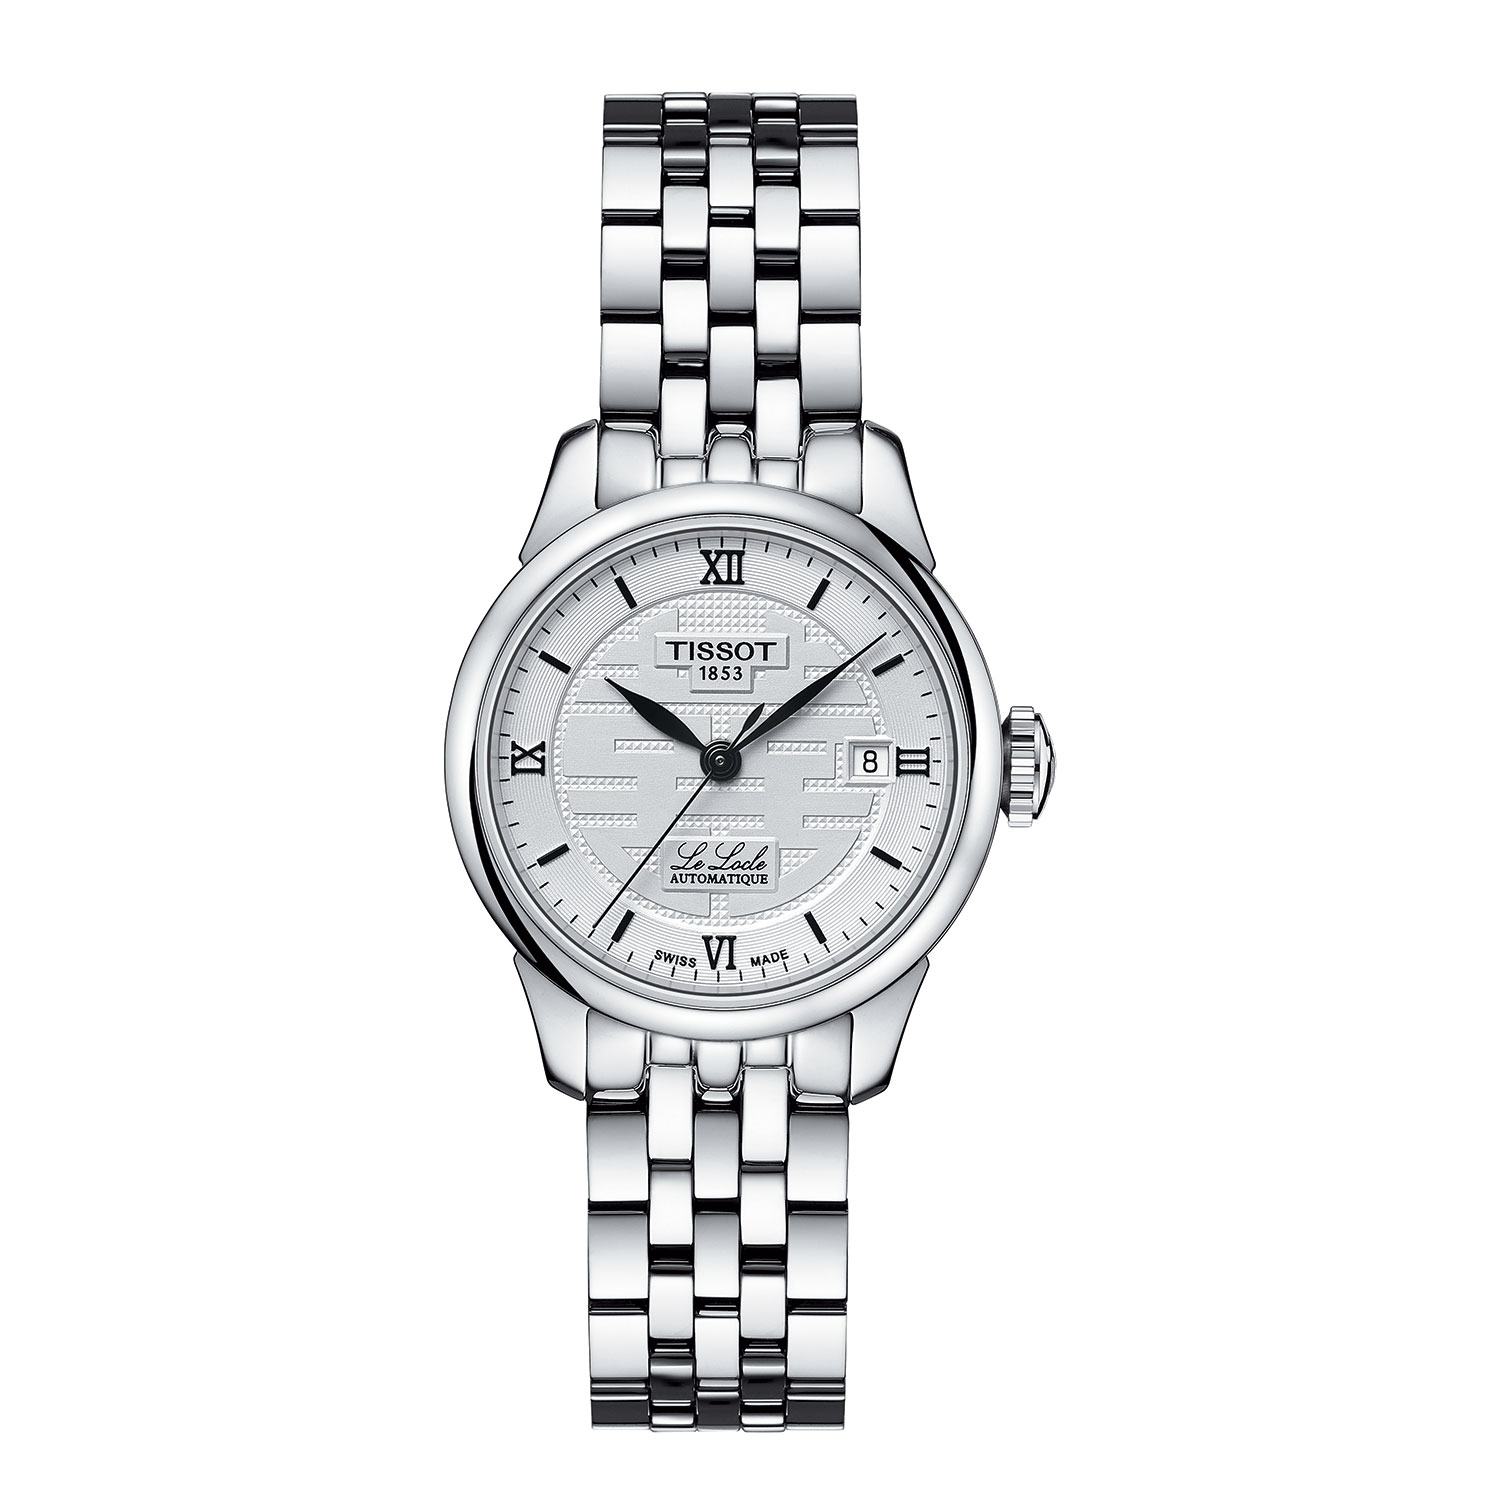 572c0fc27 Tissot Le Locle Double Happiness Lady's Automatic Watch - T41118335 ...